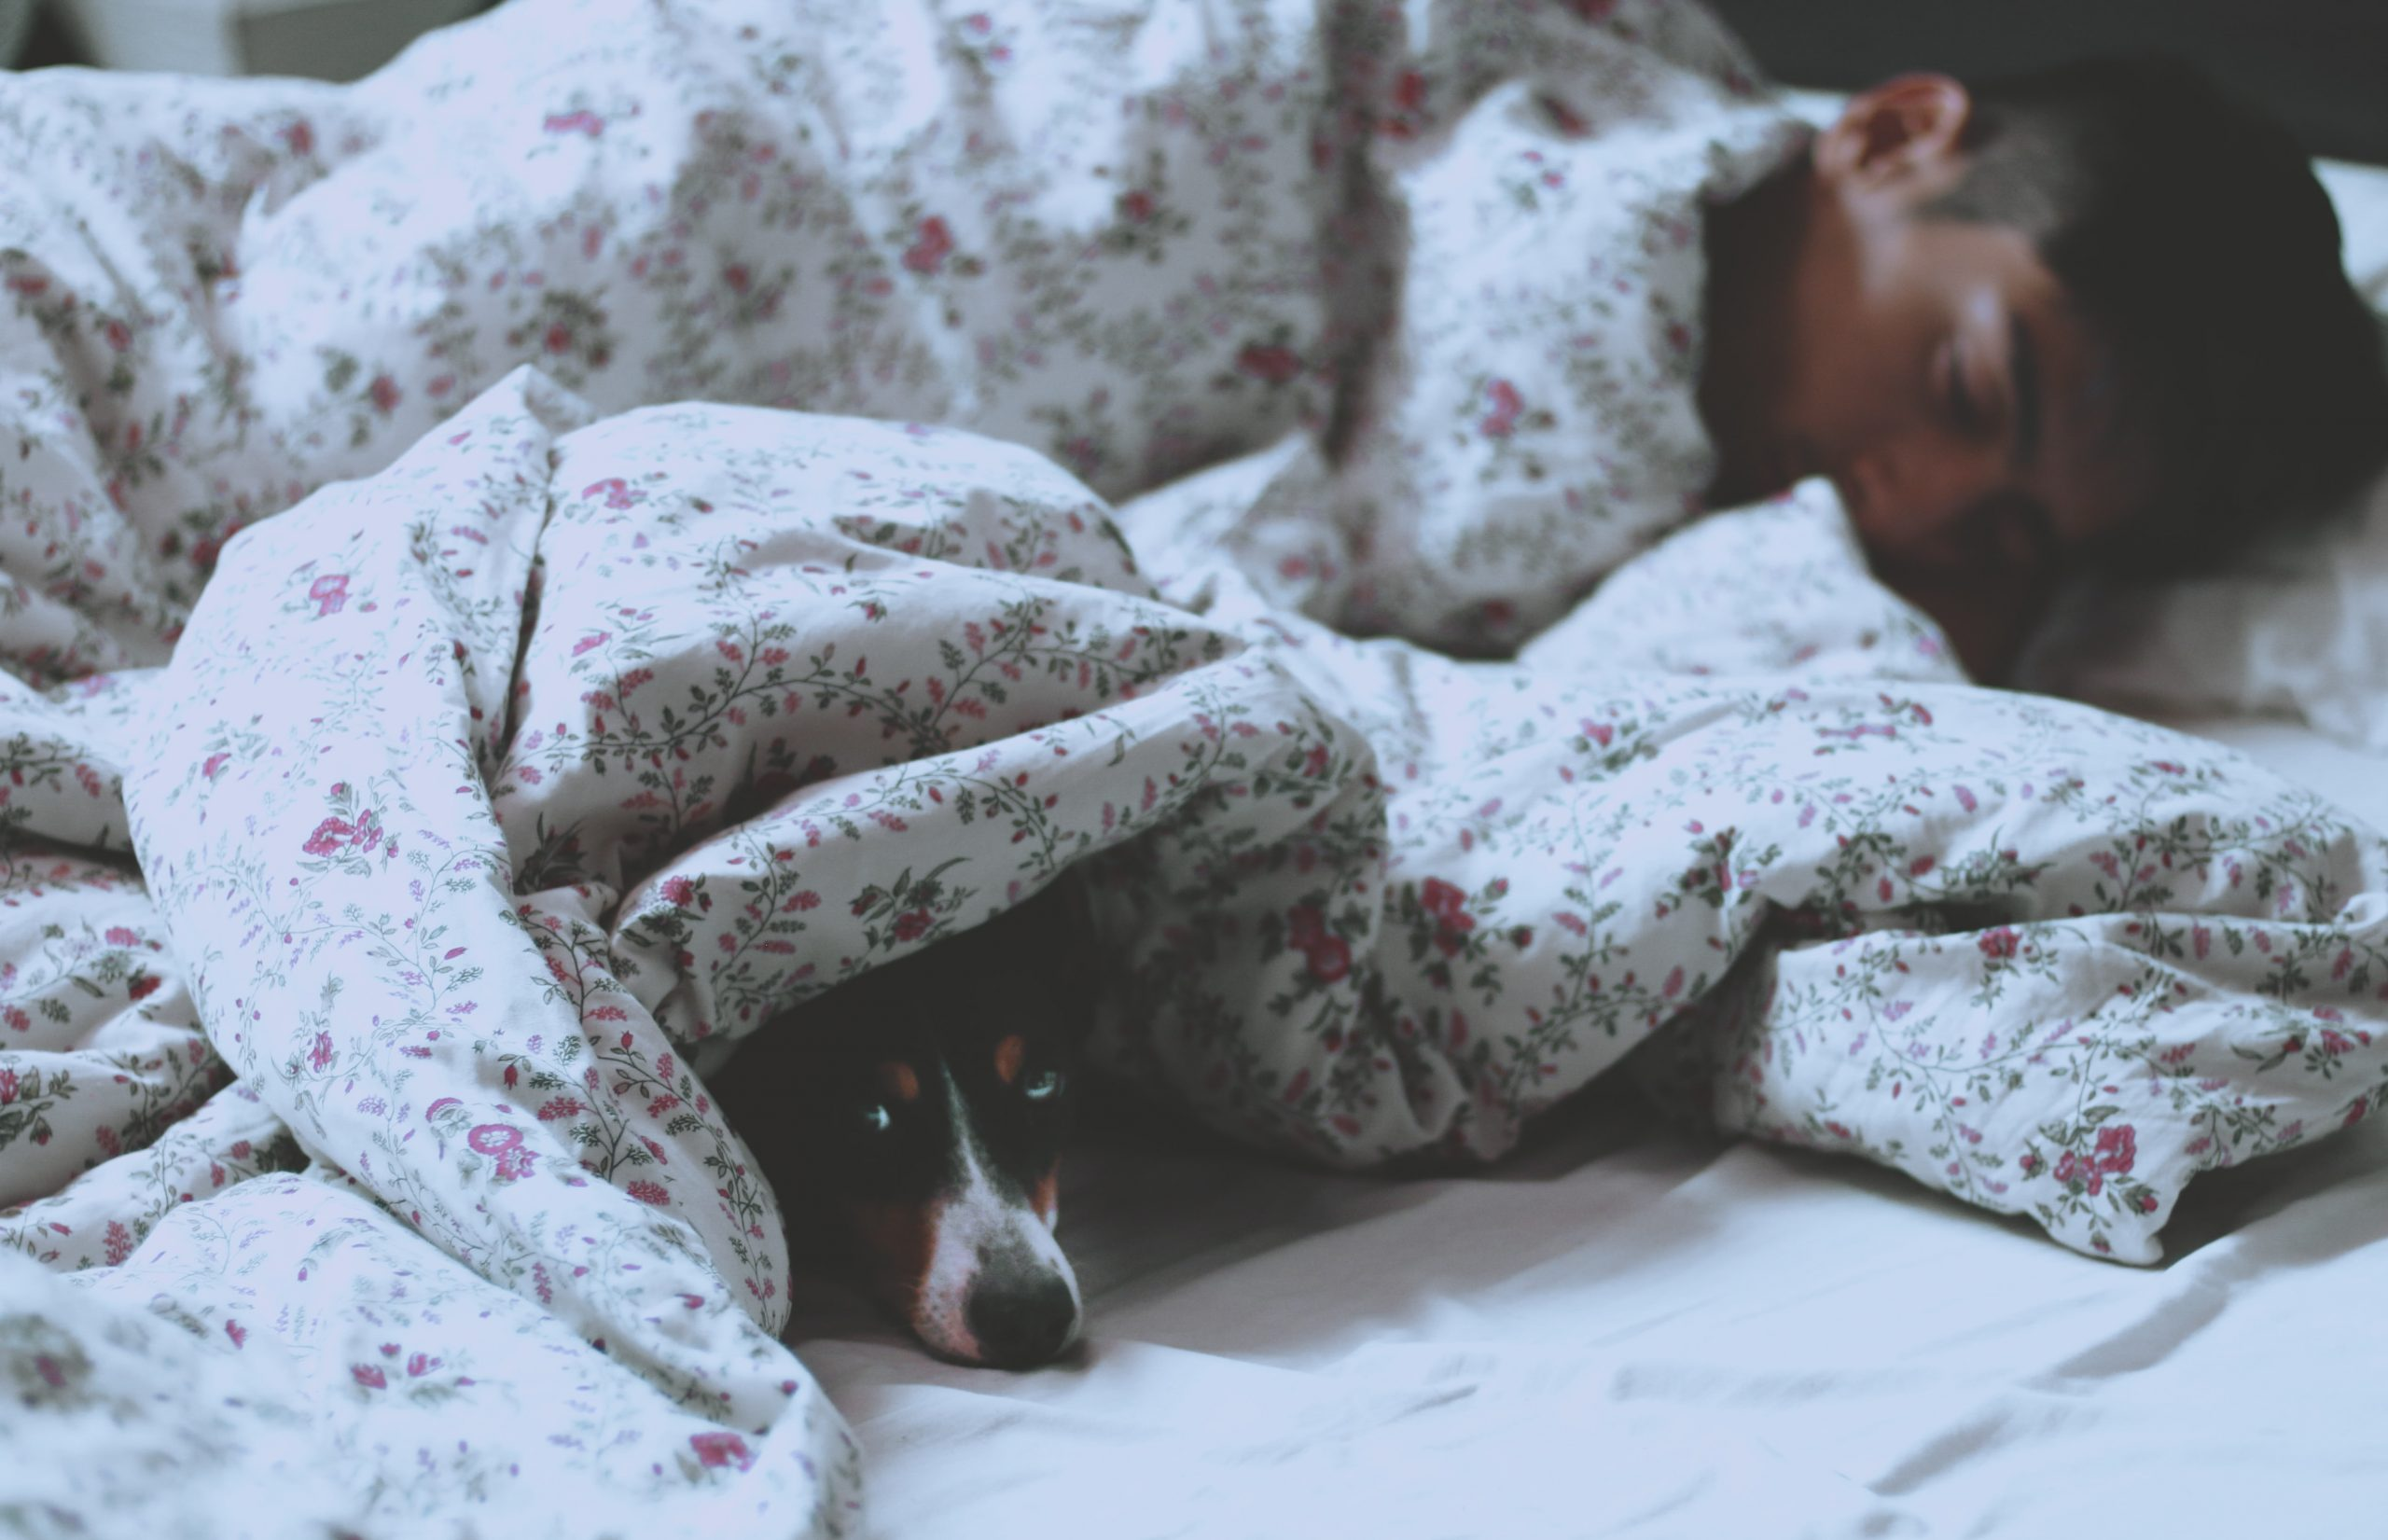 man sleeping with a dog peeking out from under the blanket